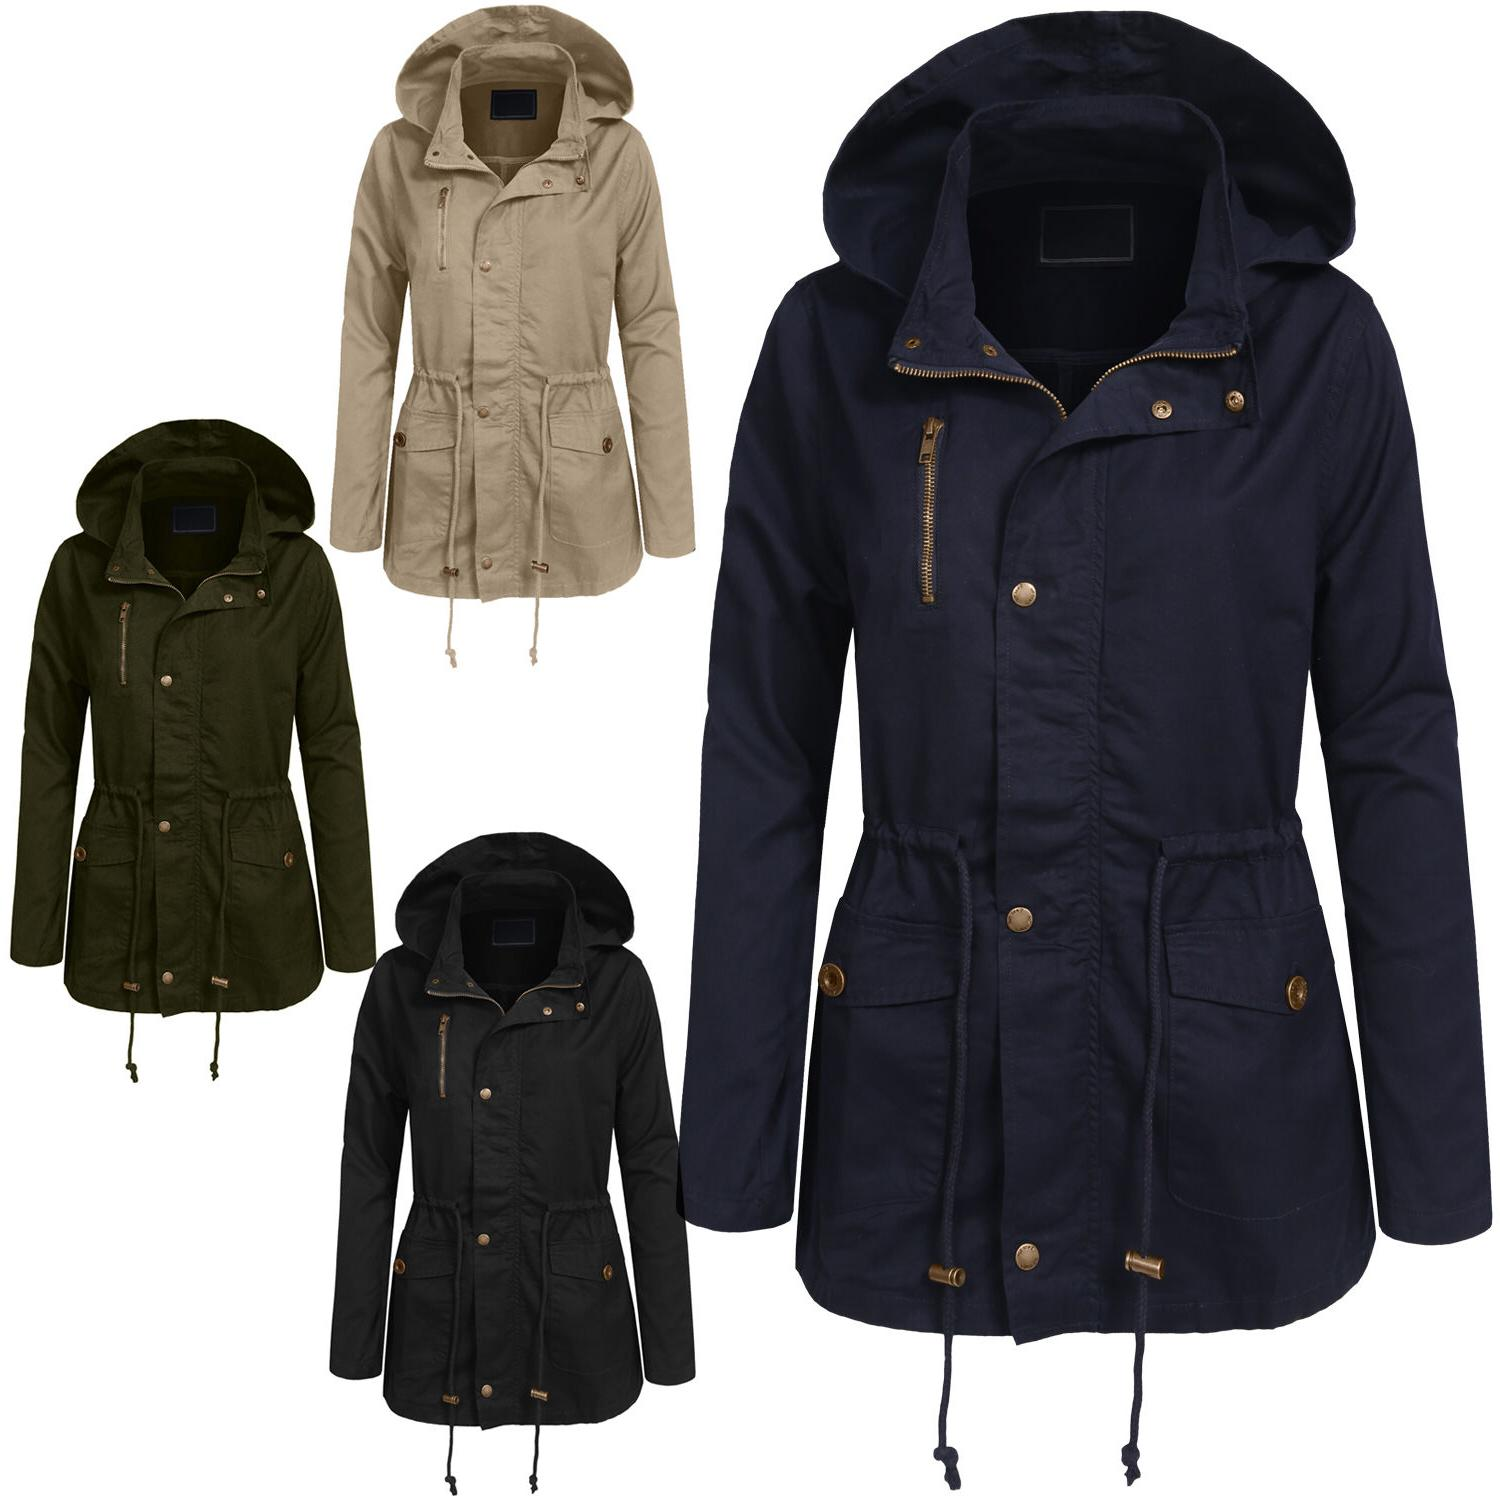 womens long sleeve military anorak hooded jacket